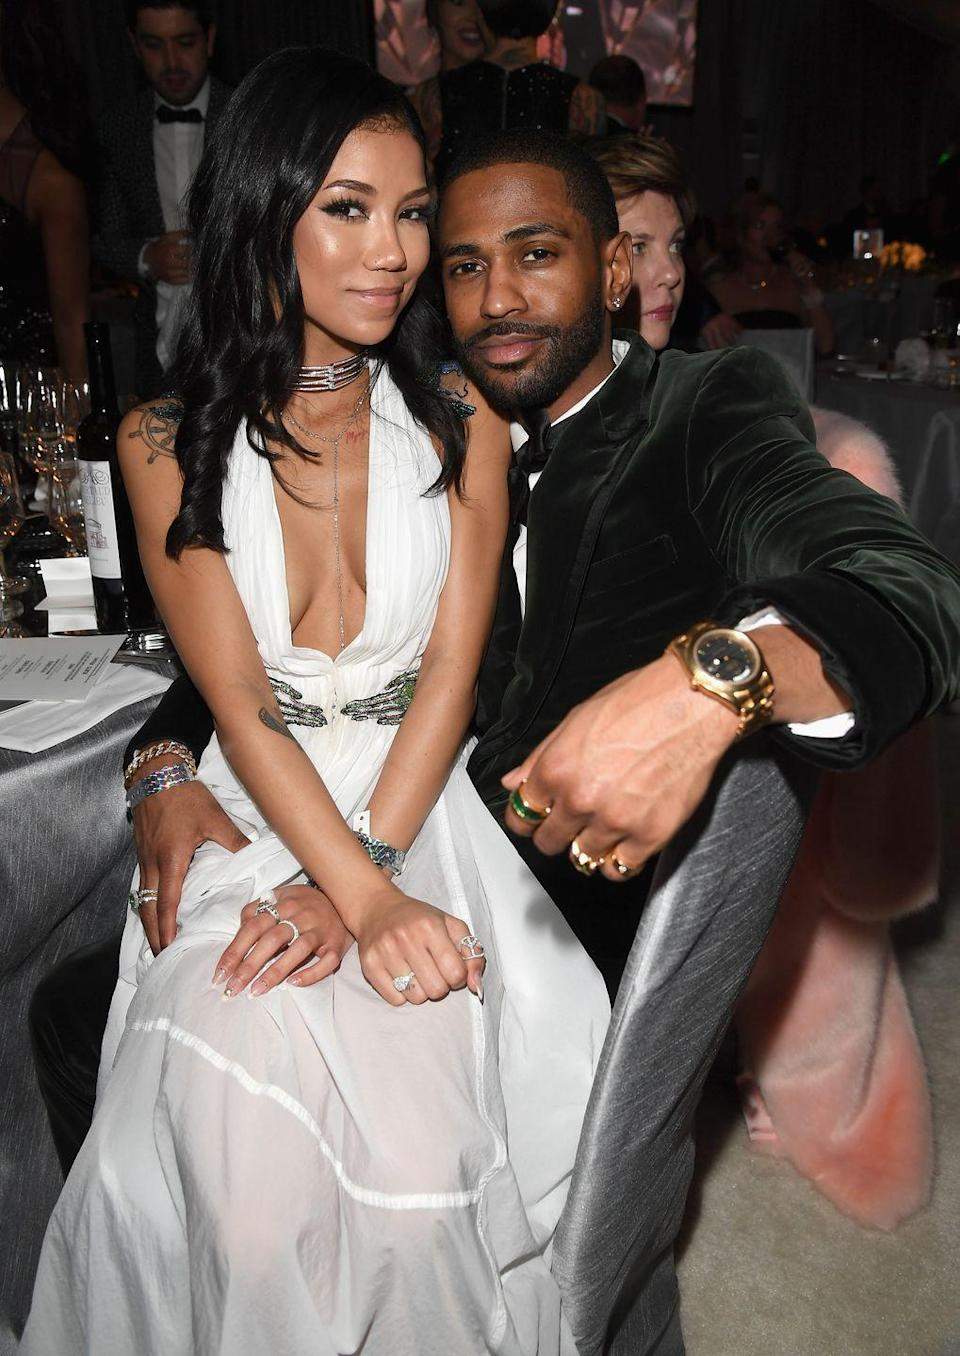 """<p>""""The way in which Jhené sits on Big Sean's lap tells us that there has been some longevity to their relationship and that they're highly comfortable with each other,"""" Donaldson says. </p><p>They're also touching heads, which signals that they have similar mindsets. Plus, Sean's hand on Jhené's leg screams intimacy. Both also point to the fact that Jhené and Big Sean's relationship is one that was long established. You wouldn't see a new couple posing like this, says Donaldson, at least not this convincingly.</p>"""